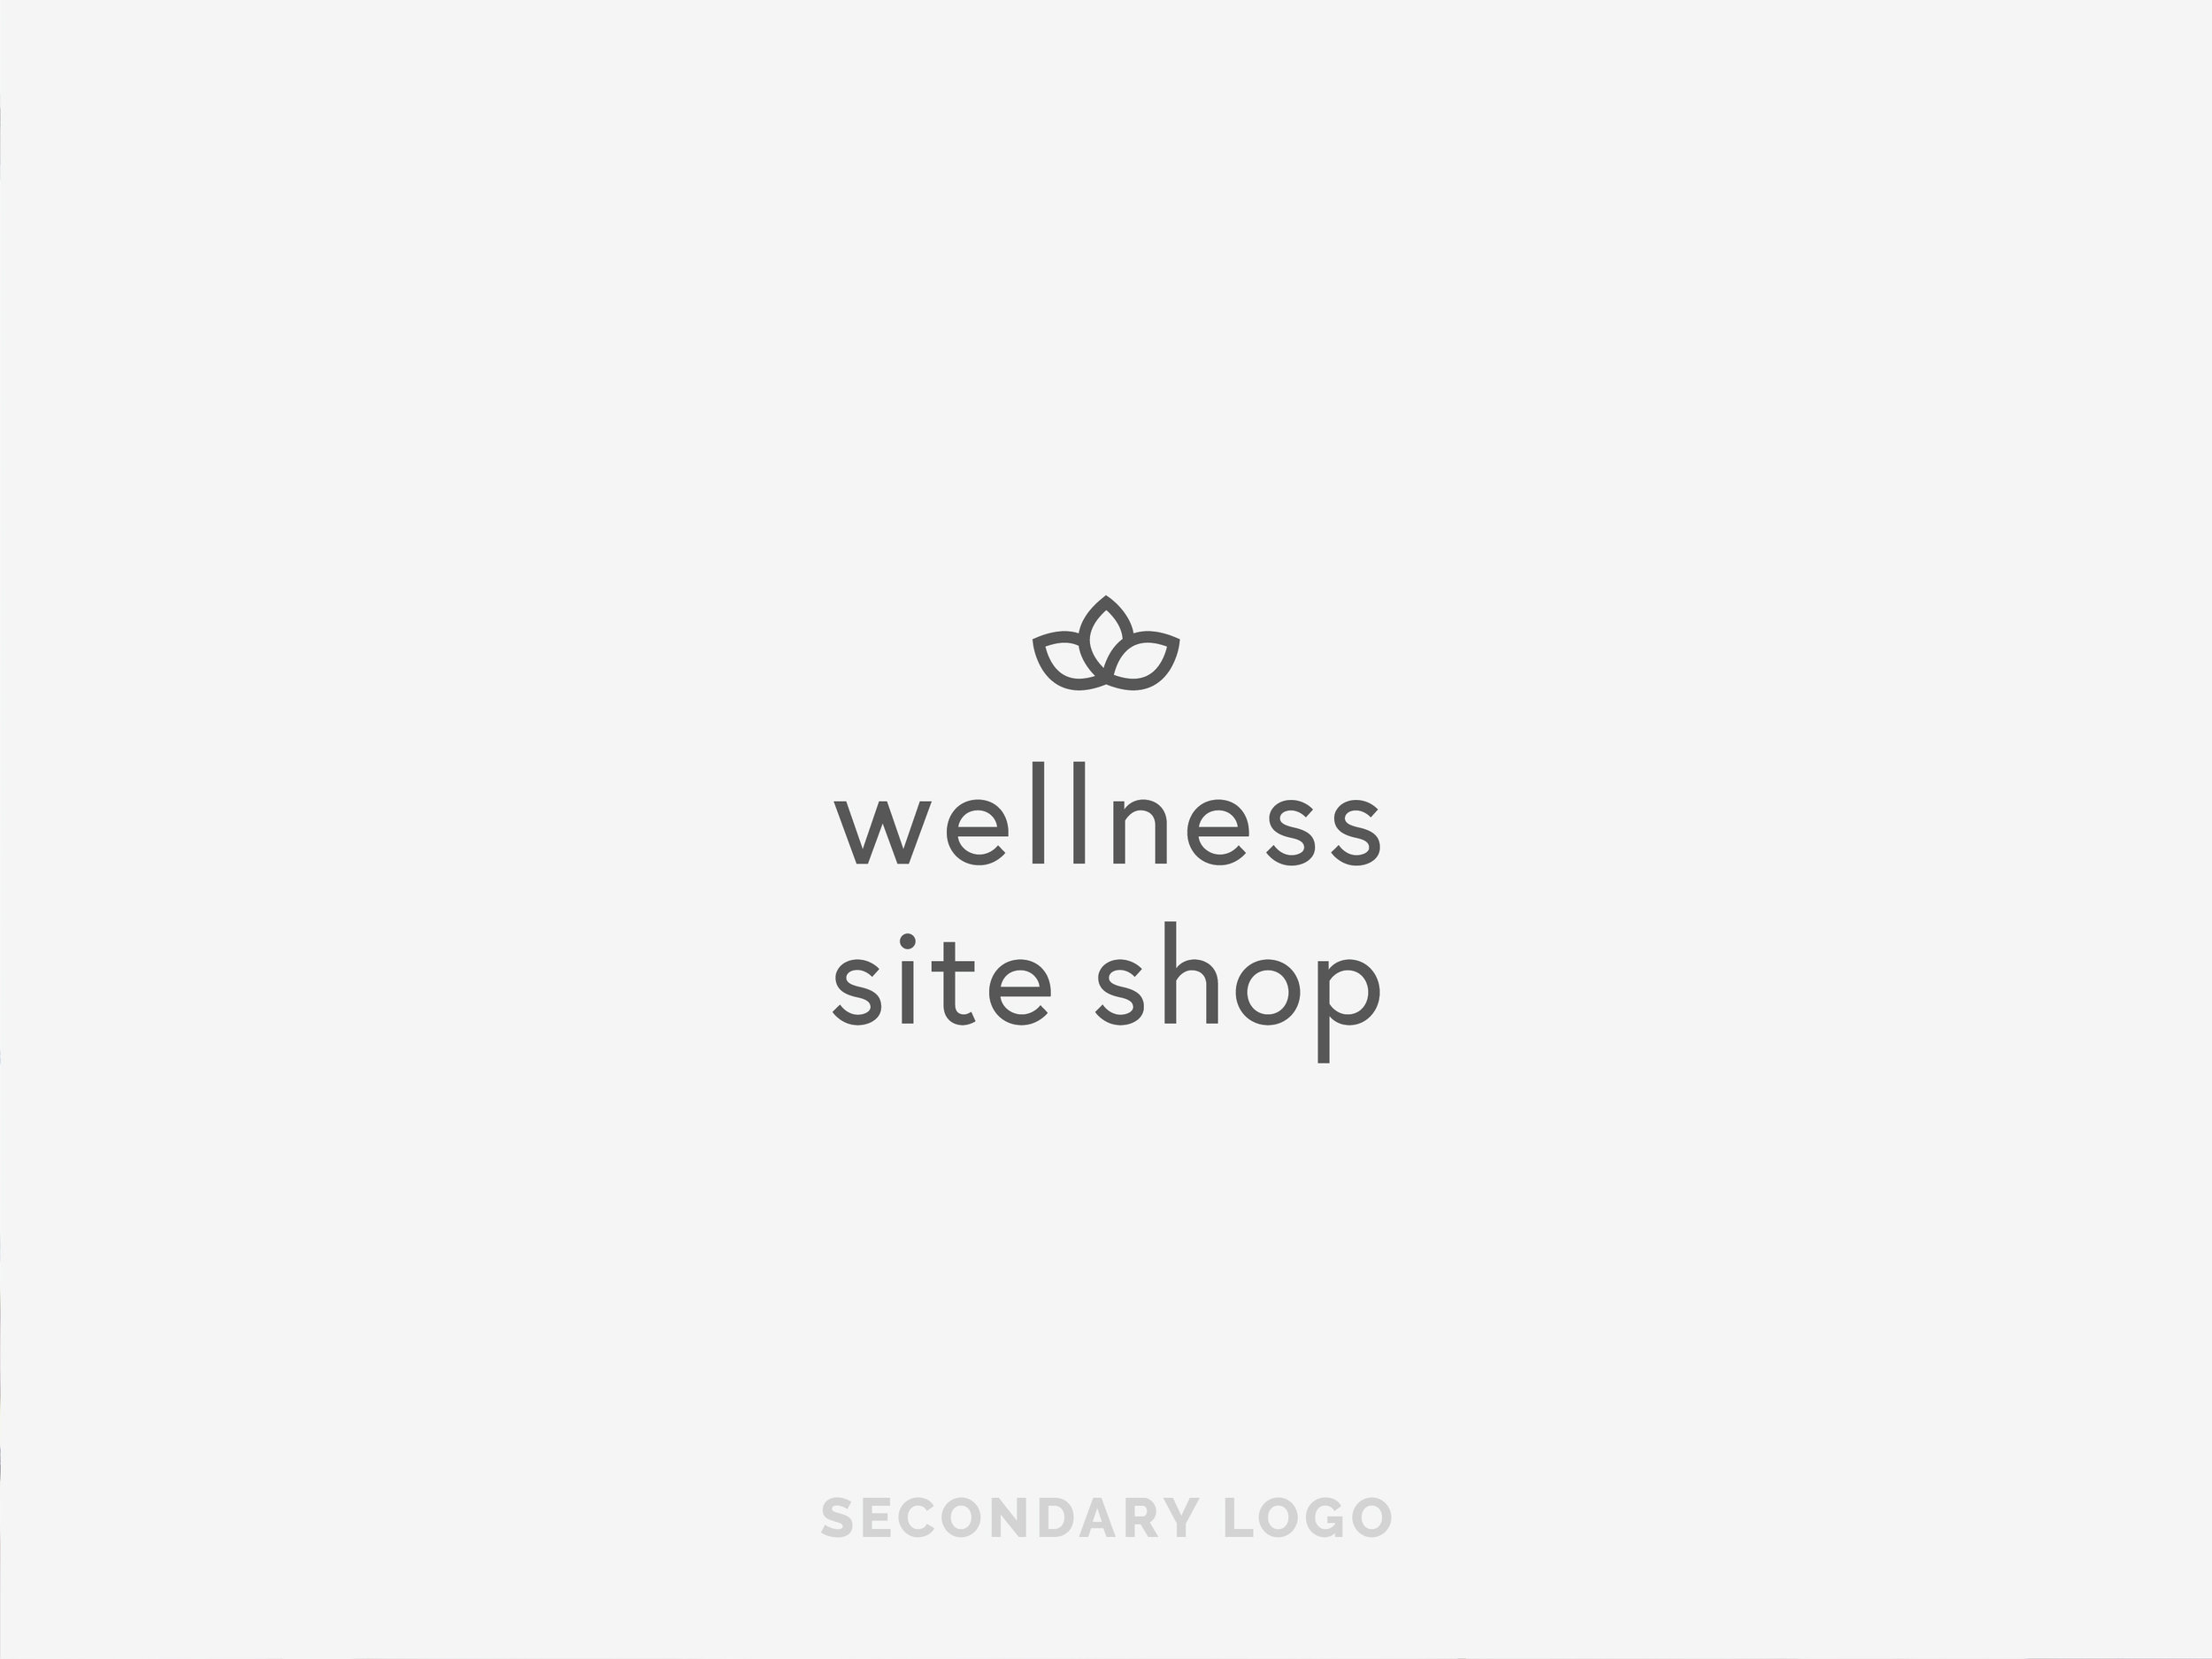 wellness site shop 4.jpg